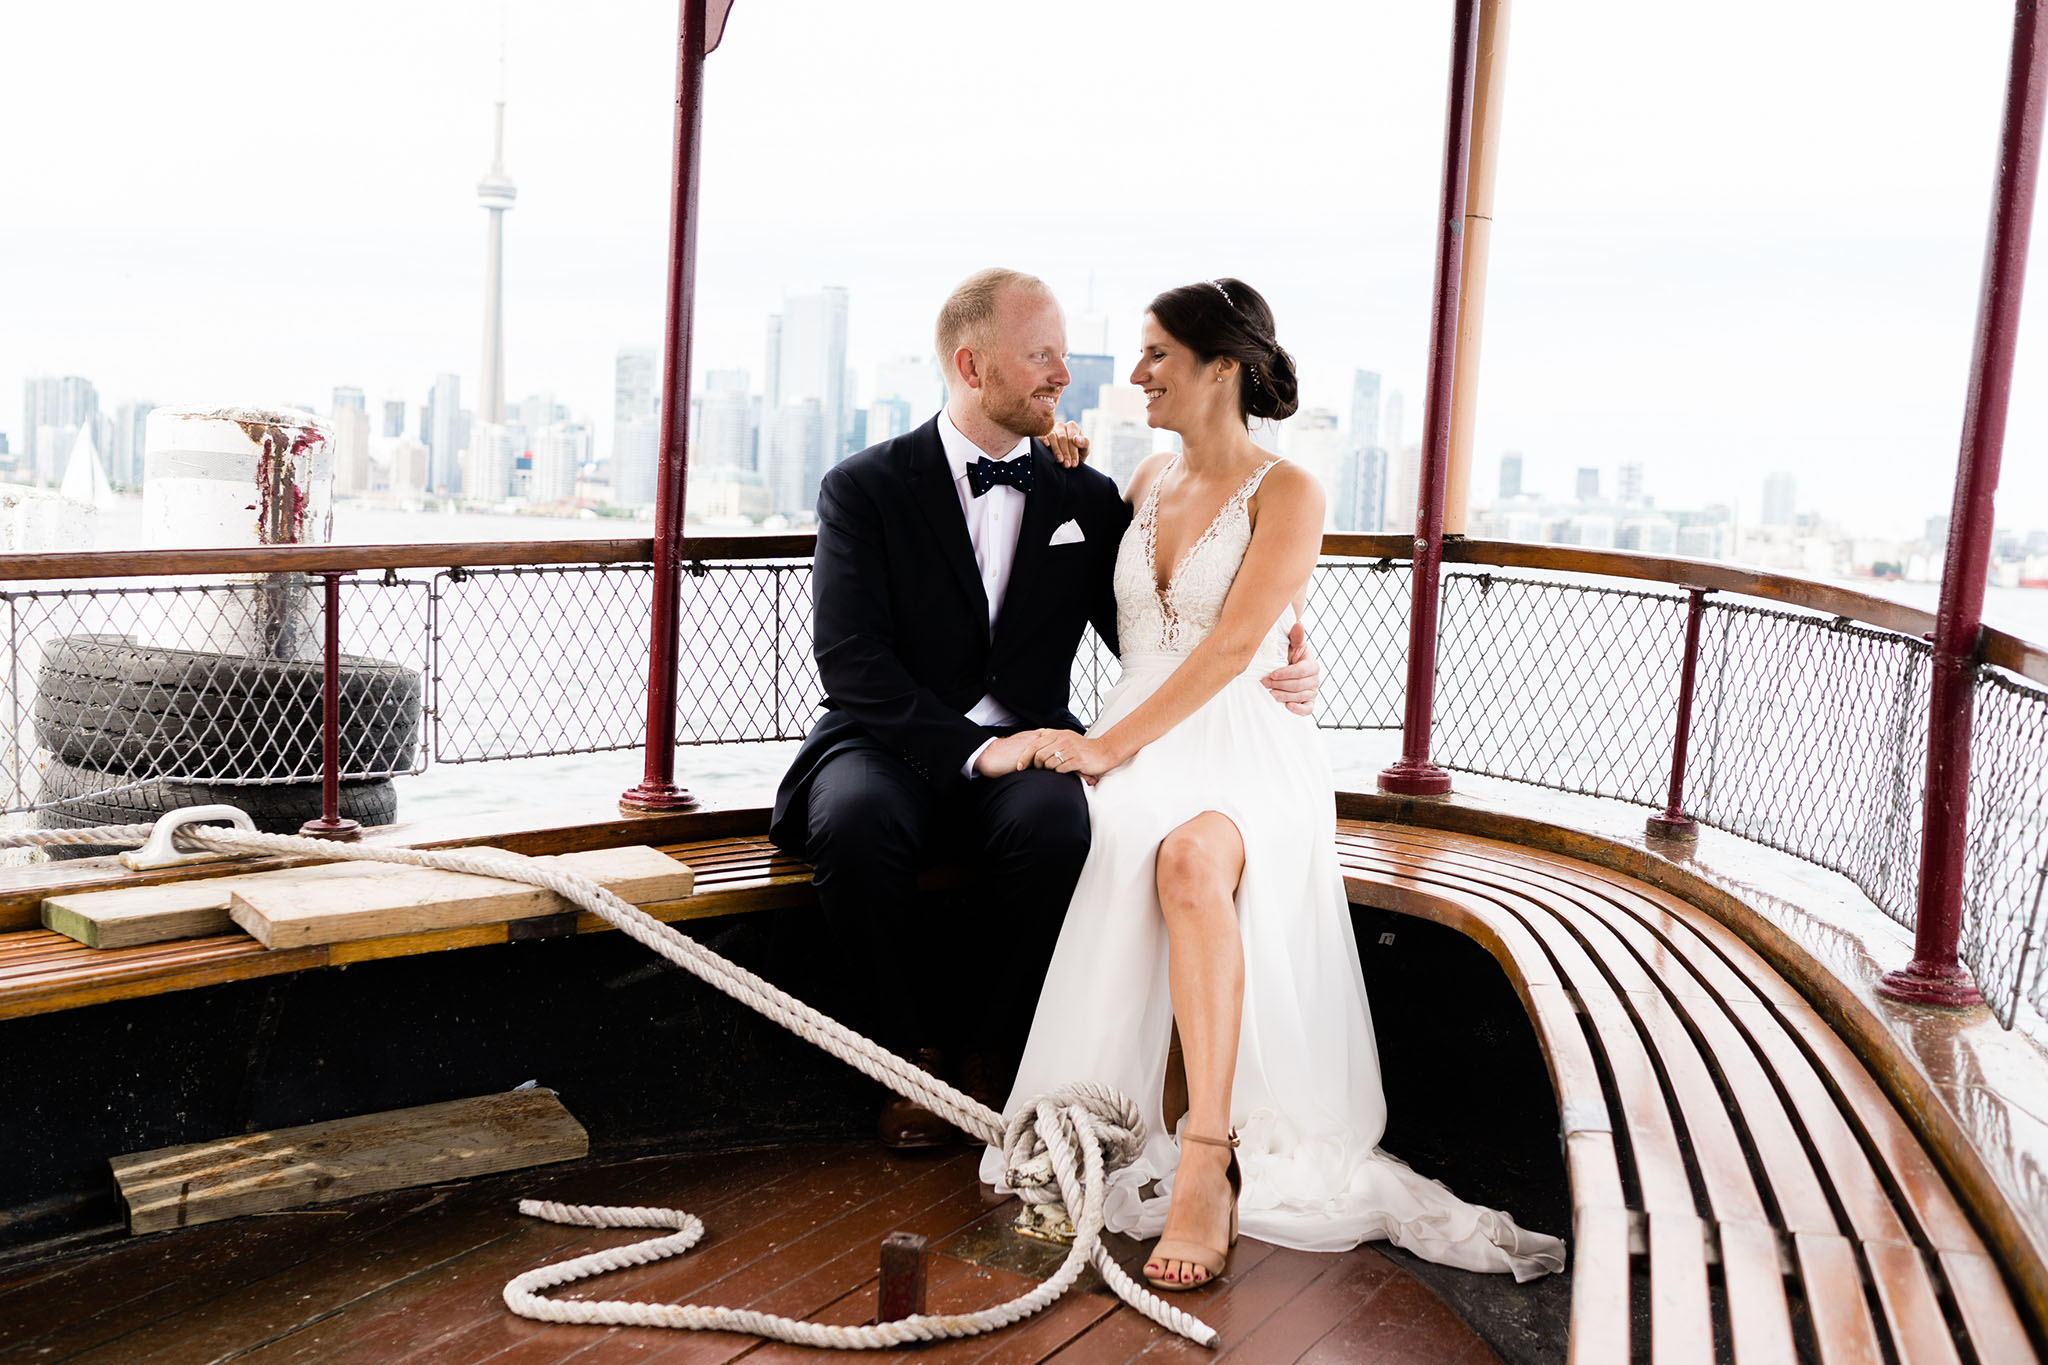 Before you arrive at the RCYC you must take a short ferry ride. This pic is of the happily married couple riding back to the Big City after they said their I Do's